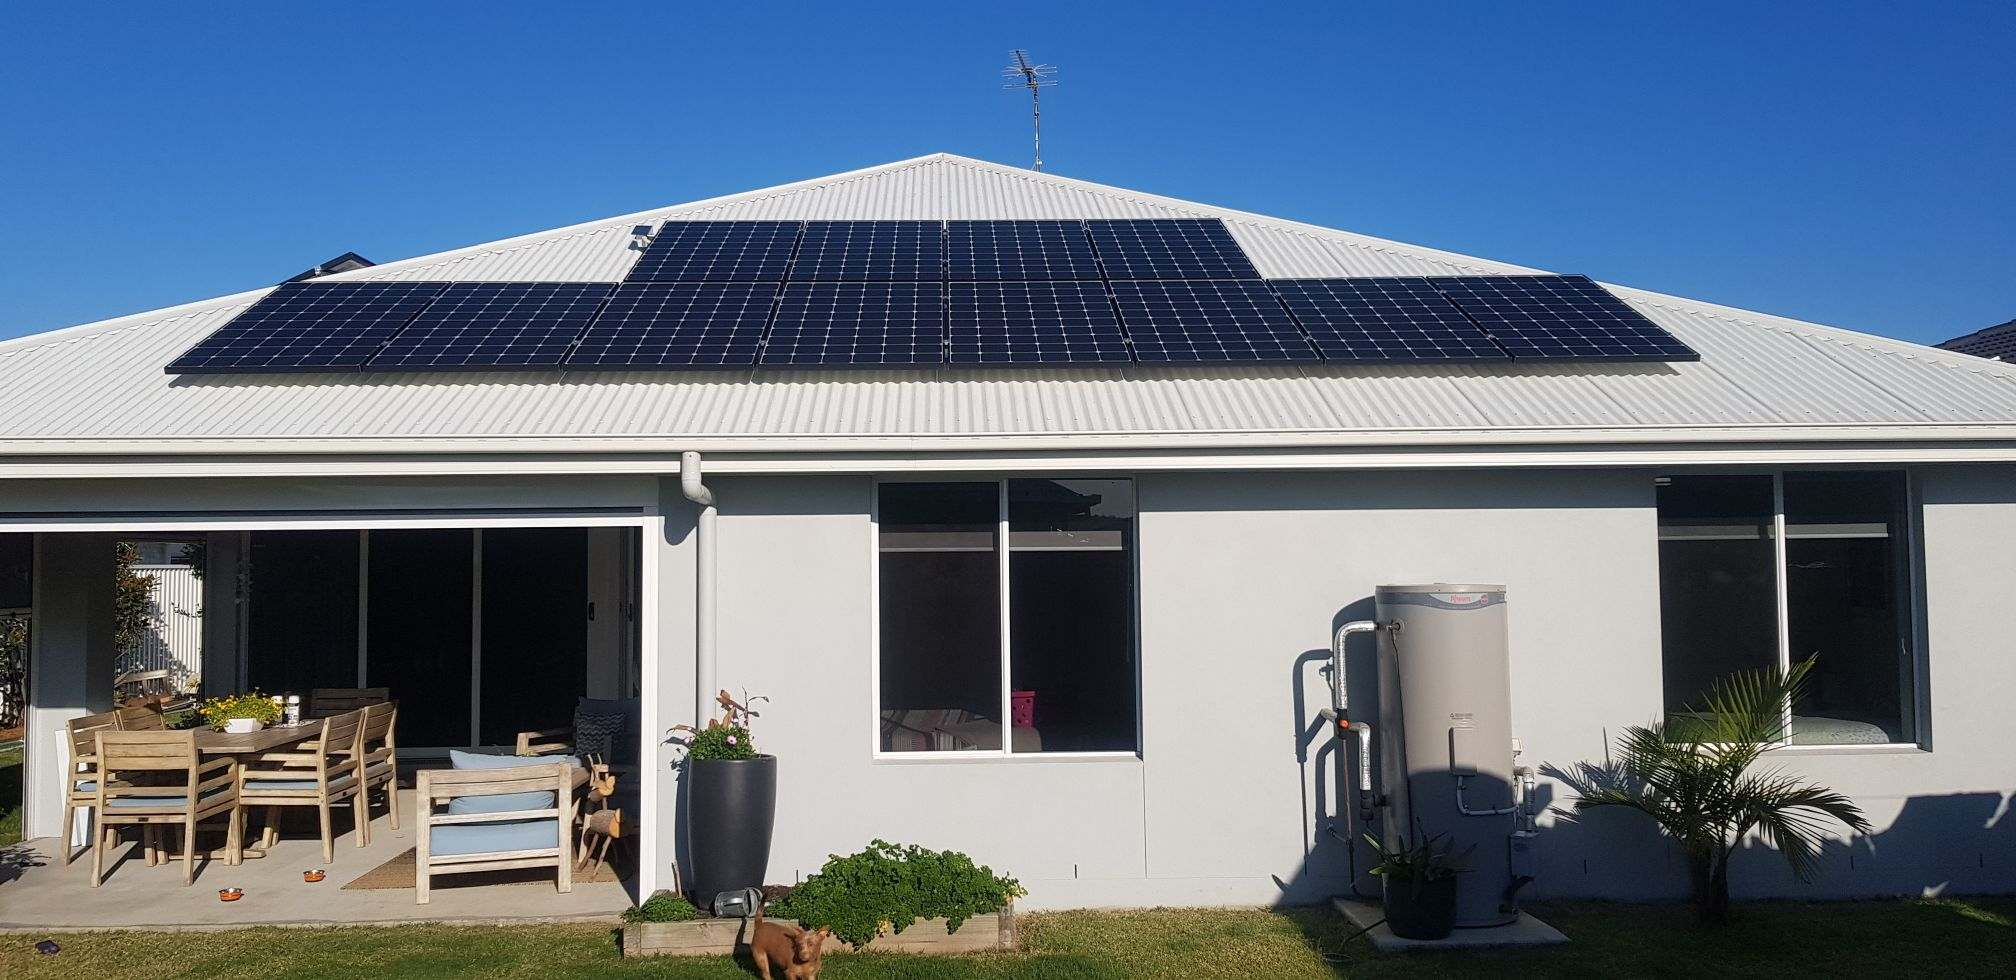 Residential installation in Ballina with LG335W modules